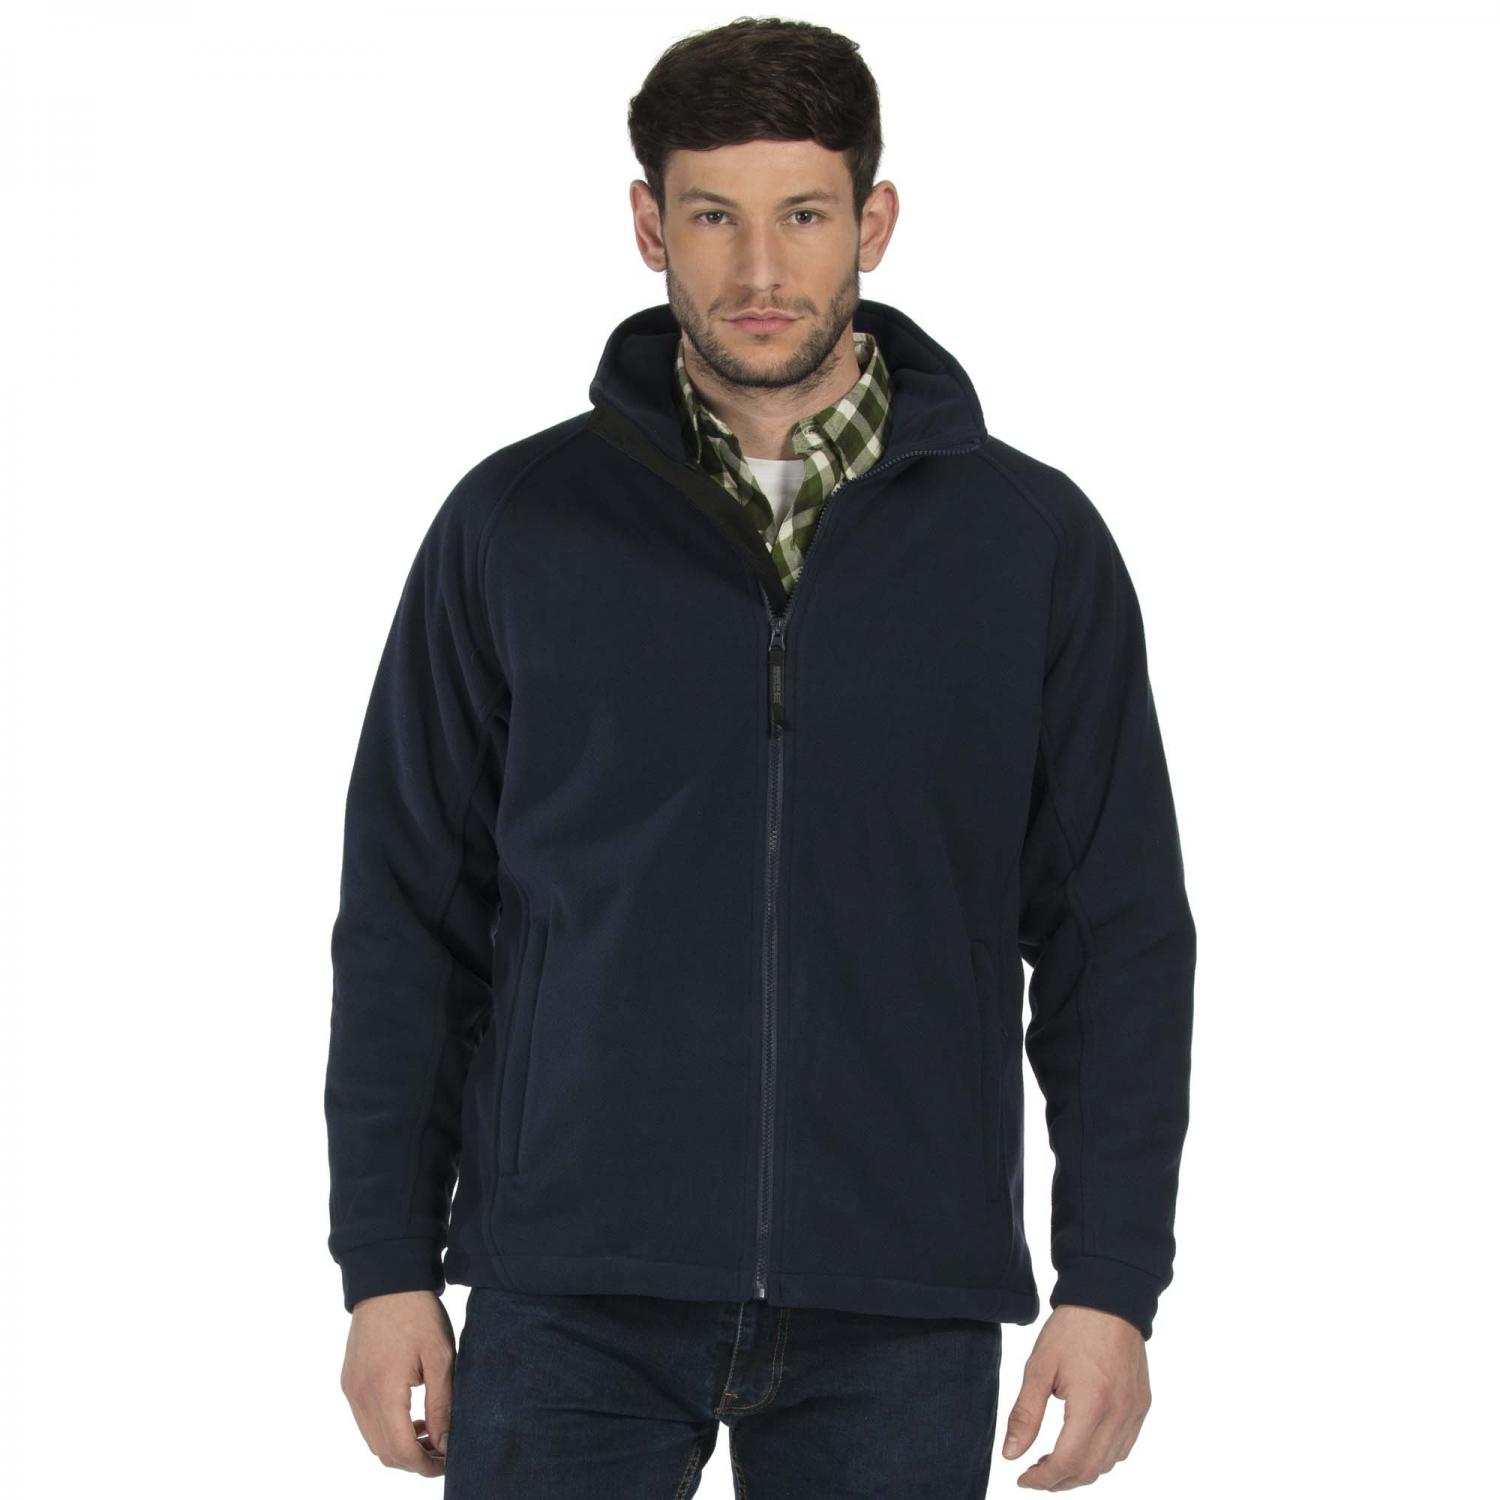 Omicron II Waterproof Fleece Dark Navy